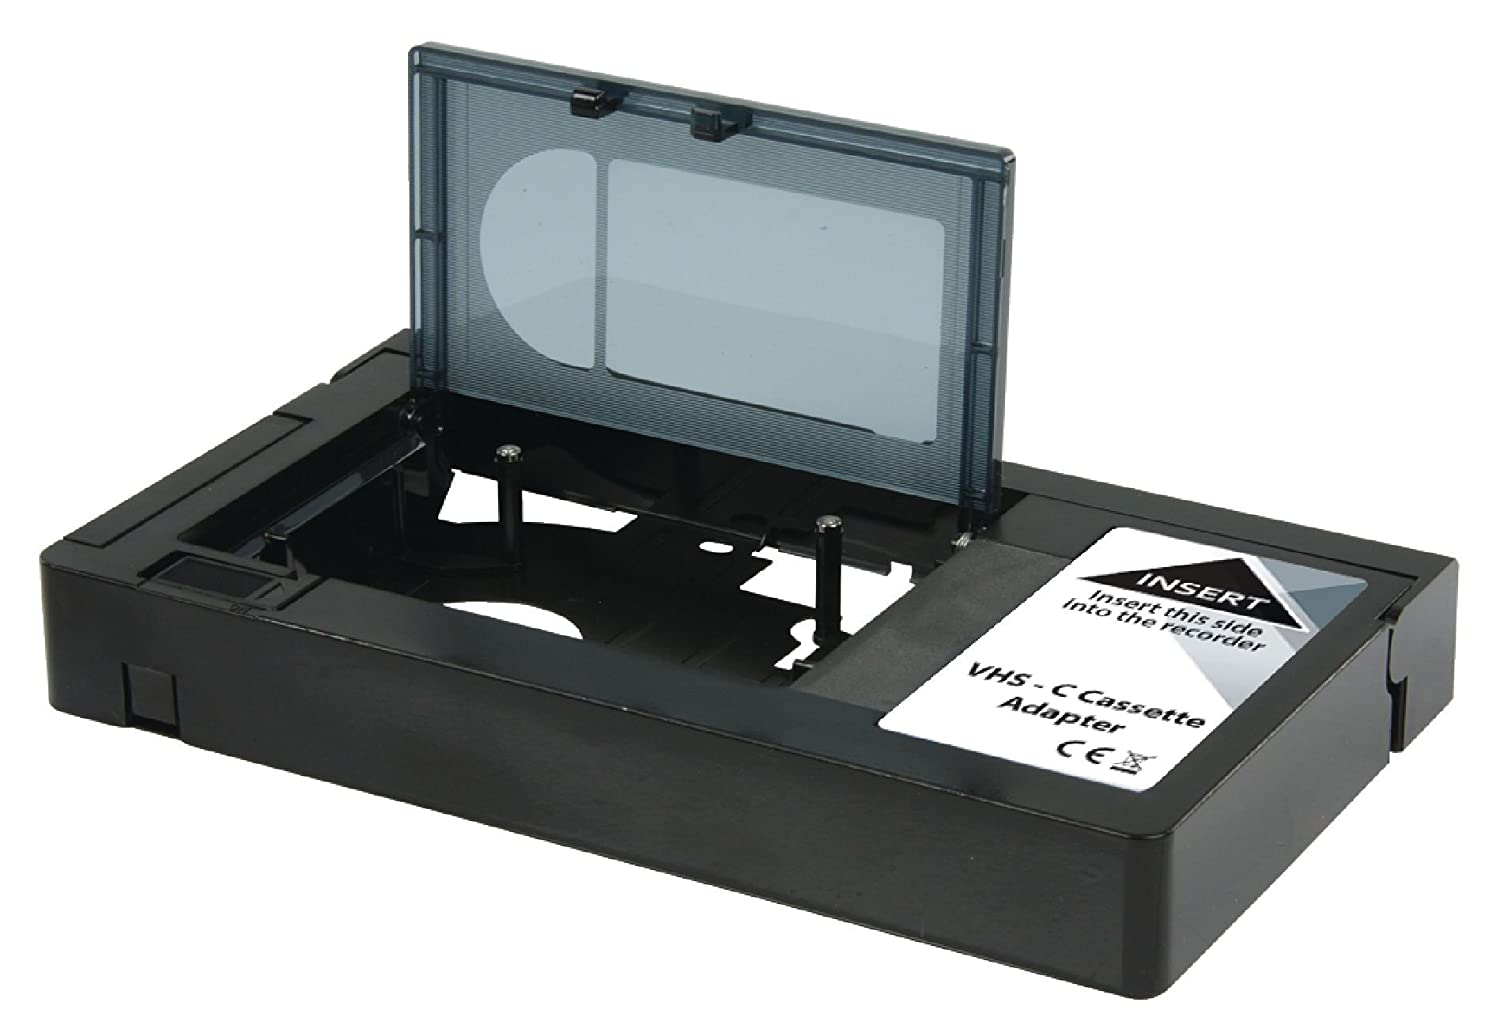 Konig Converter VHS-C to VHS Black (NOT Suitable for 8mm Tapes) [KN-VHS-C-ADAPT]